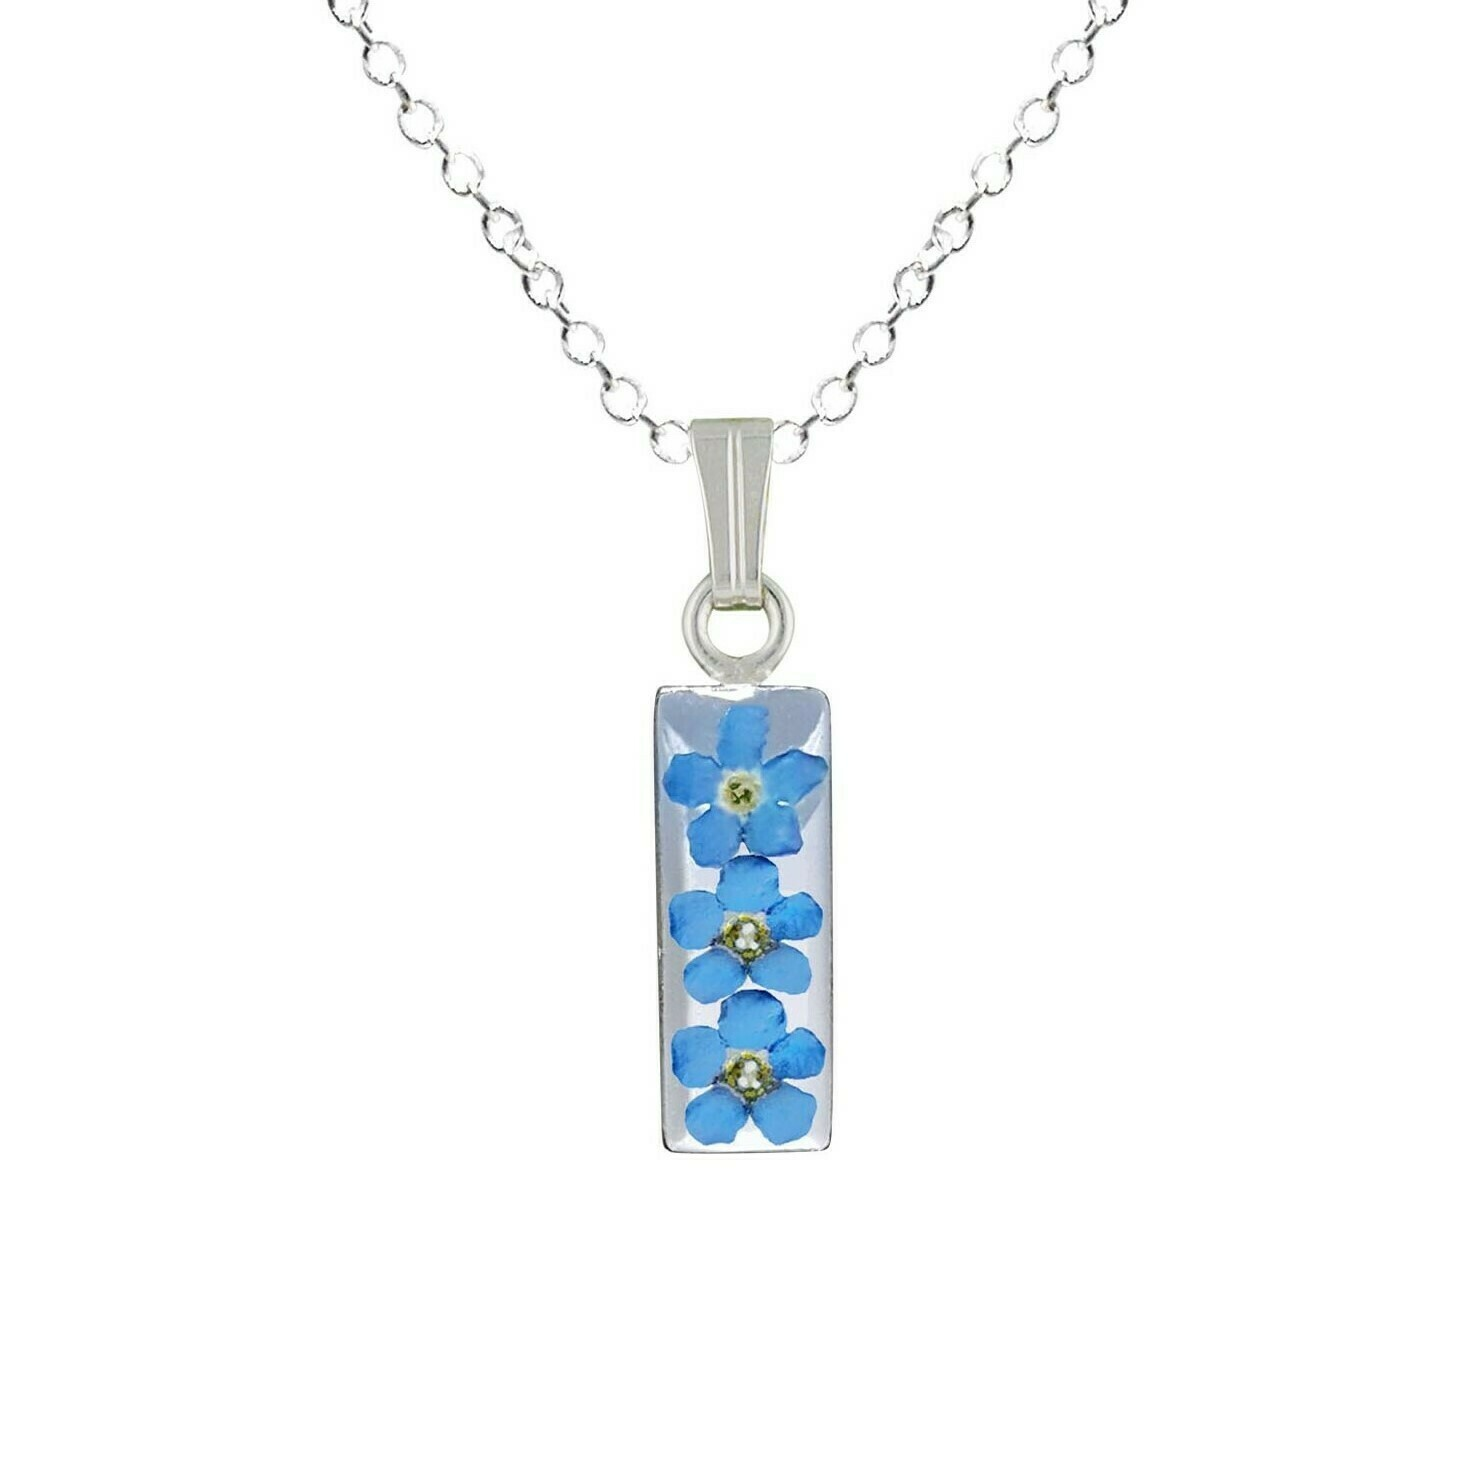 Forget-Me-Not Necklace, Small Rectangle, White Background